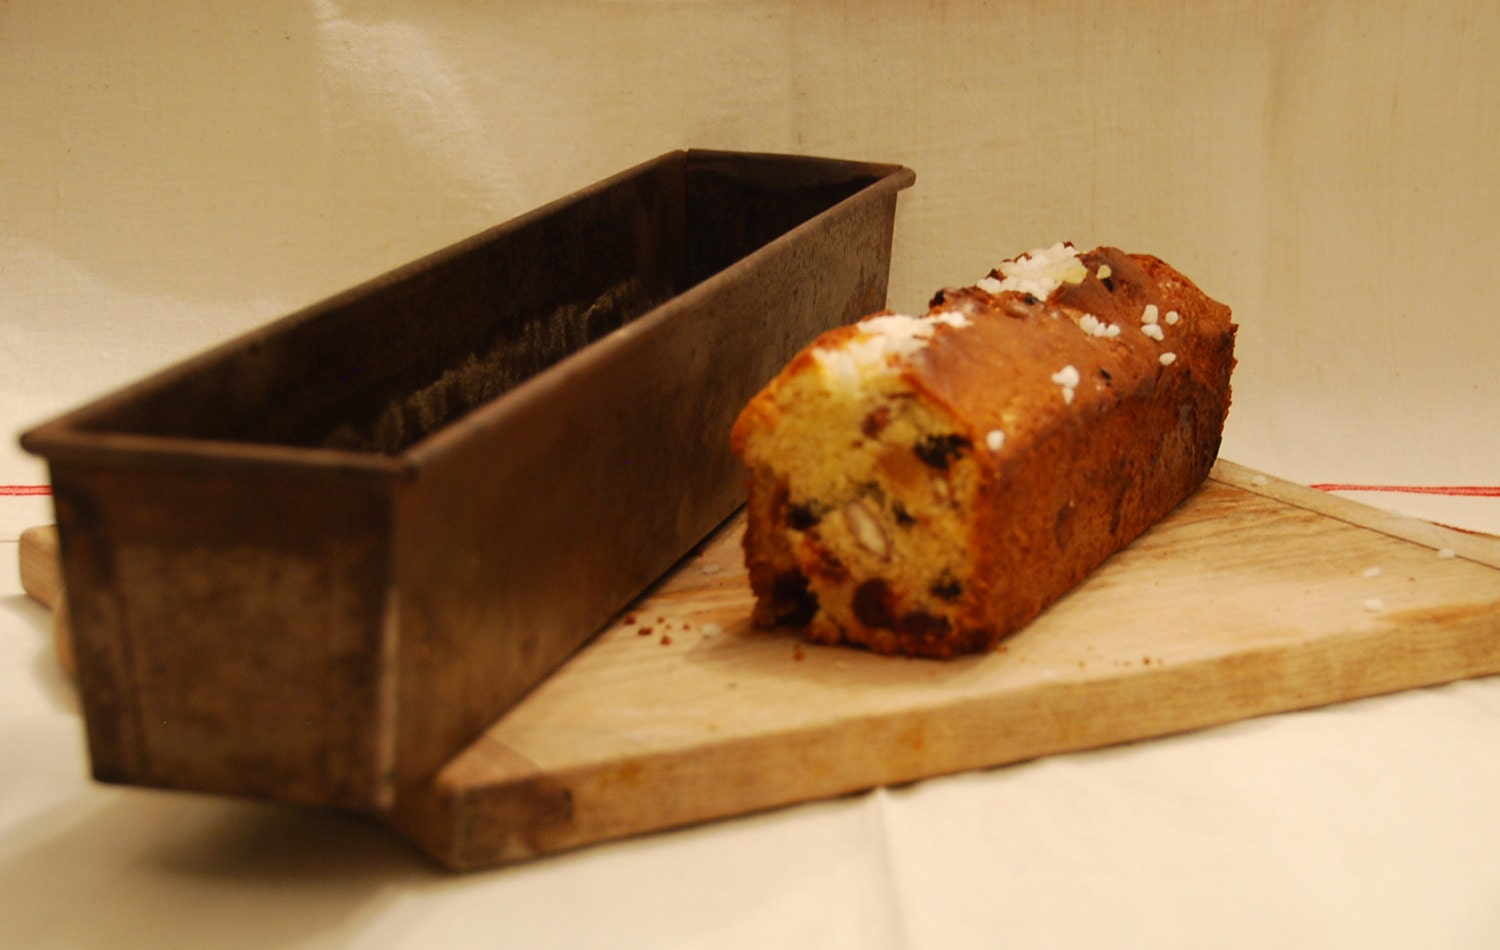 Cake Recipes Using Loaf Tin: 2 French Vintage Bakery Loaf Or Cake Tin. Very Long At 20